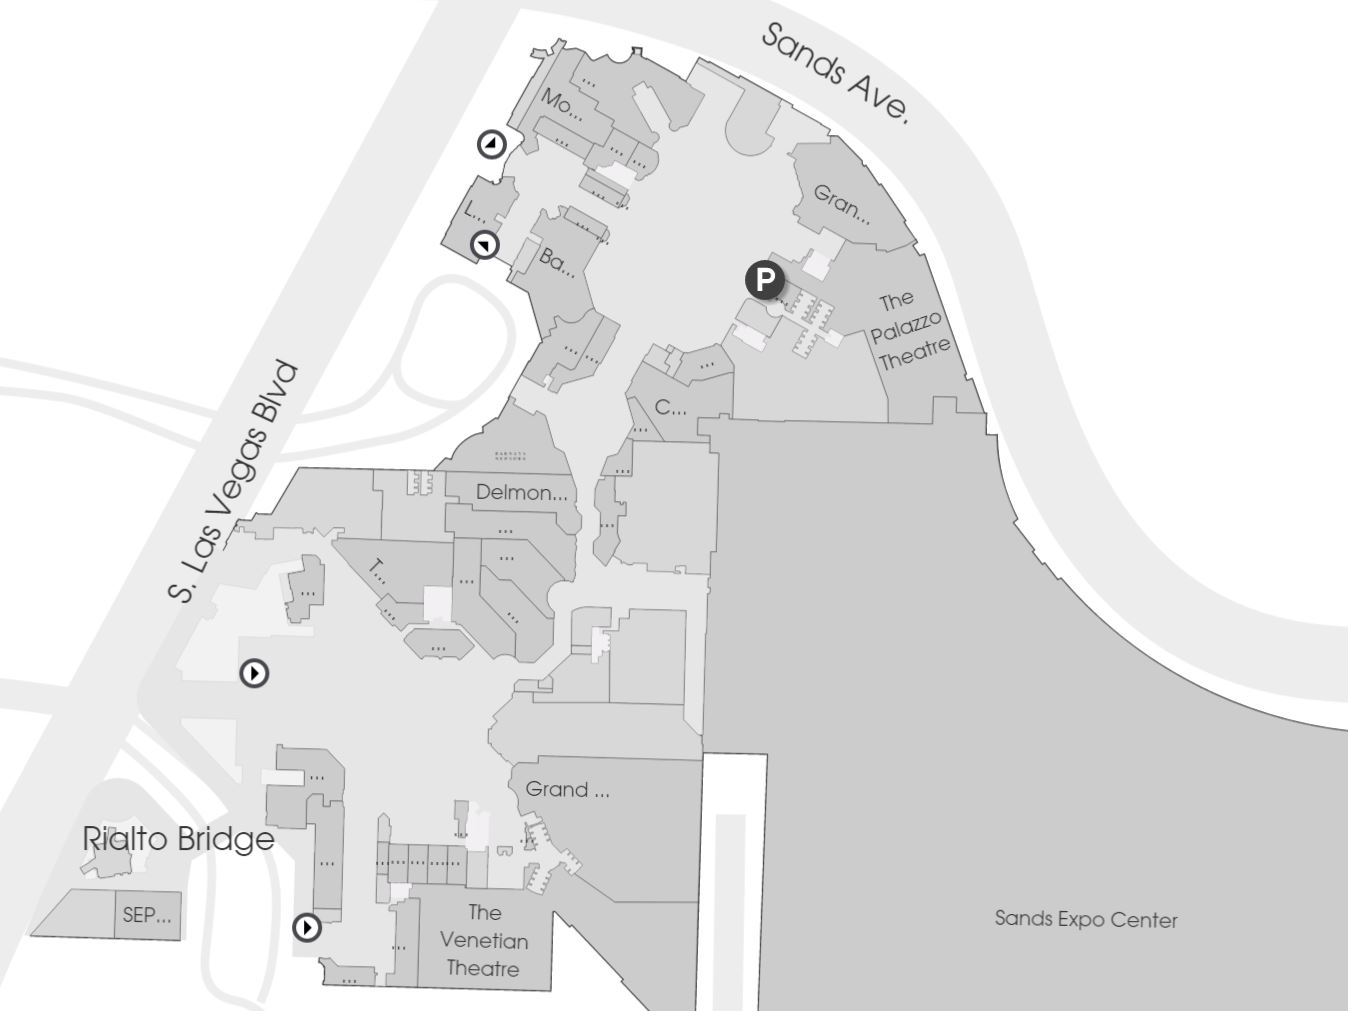 Grand Canal Shoppes Map Pictures To Pin On Pinterest PinsDaddy - Map of las vegas venetian